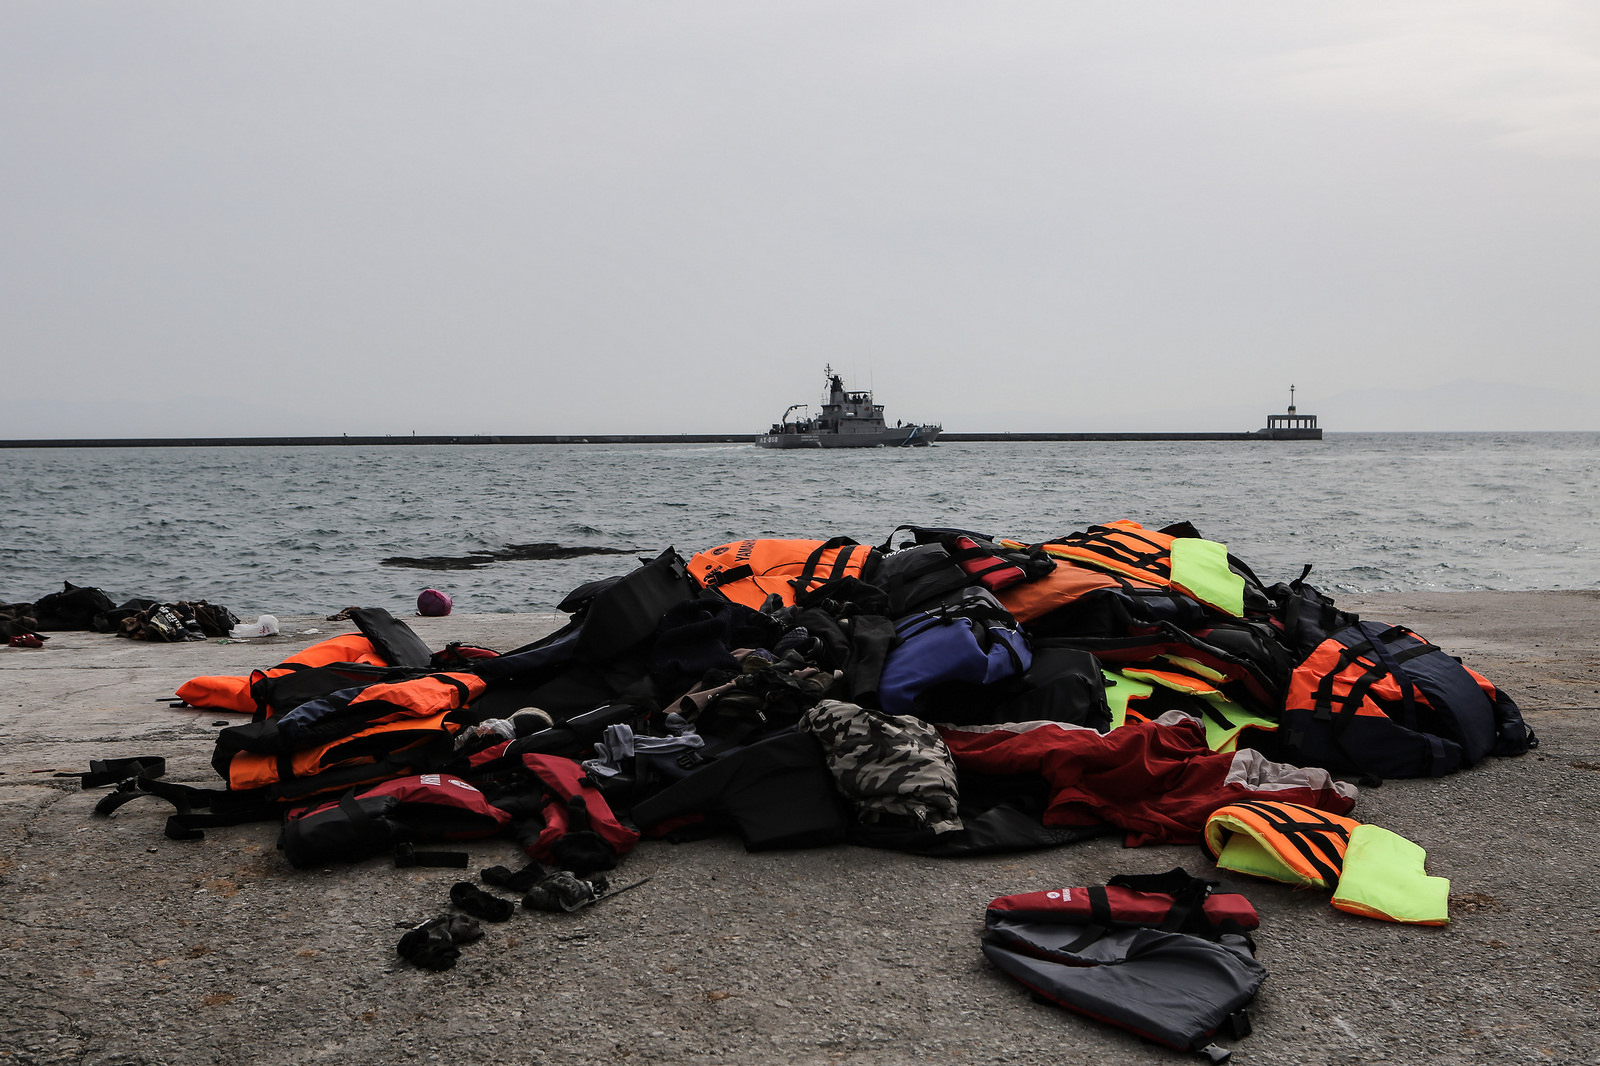 Life jackets and costguard boats at commerce port in Lesvos, Mytilene. Photo by Lefteris Partsalis, Caritas Switzerland.